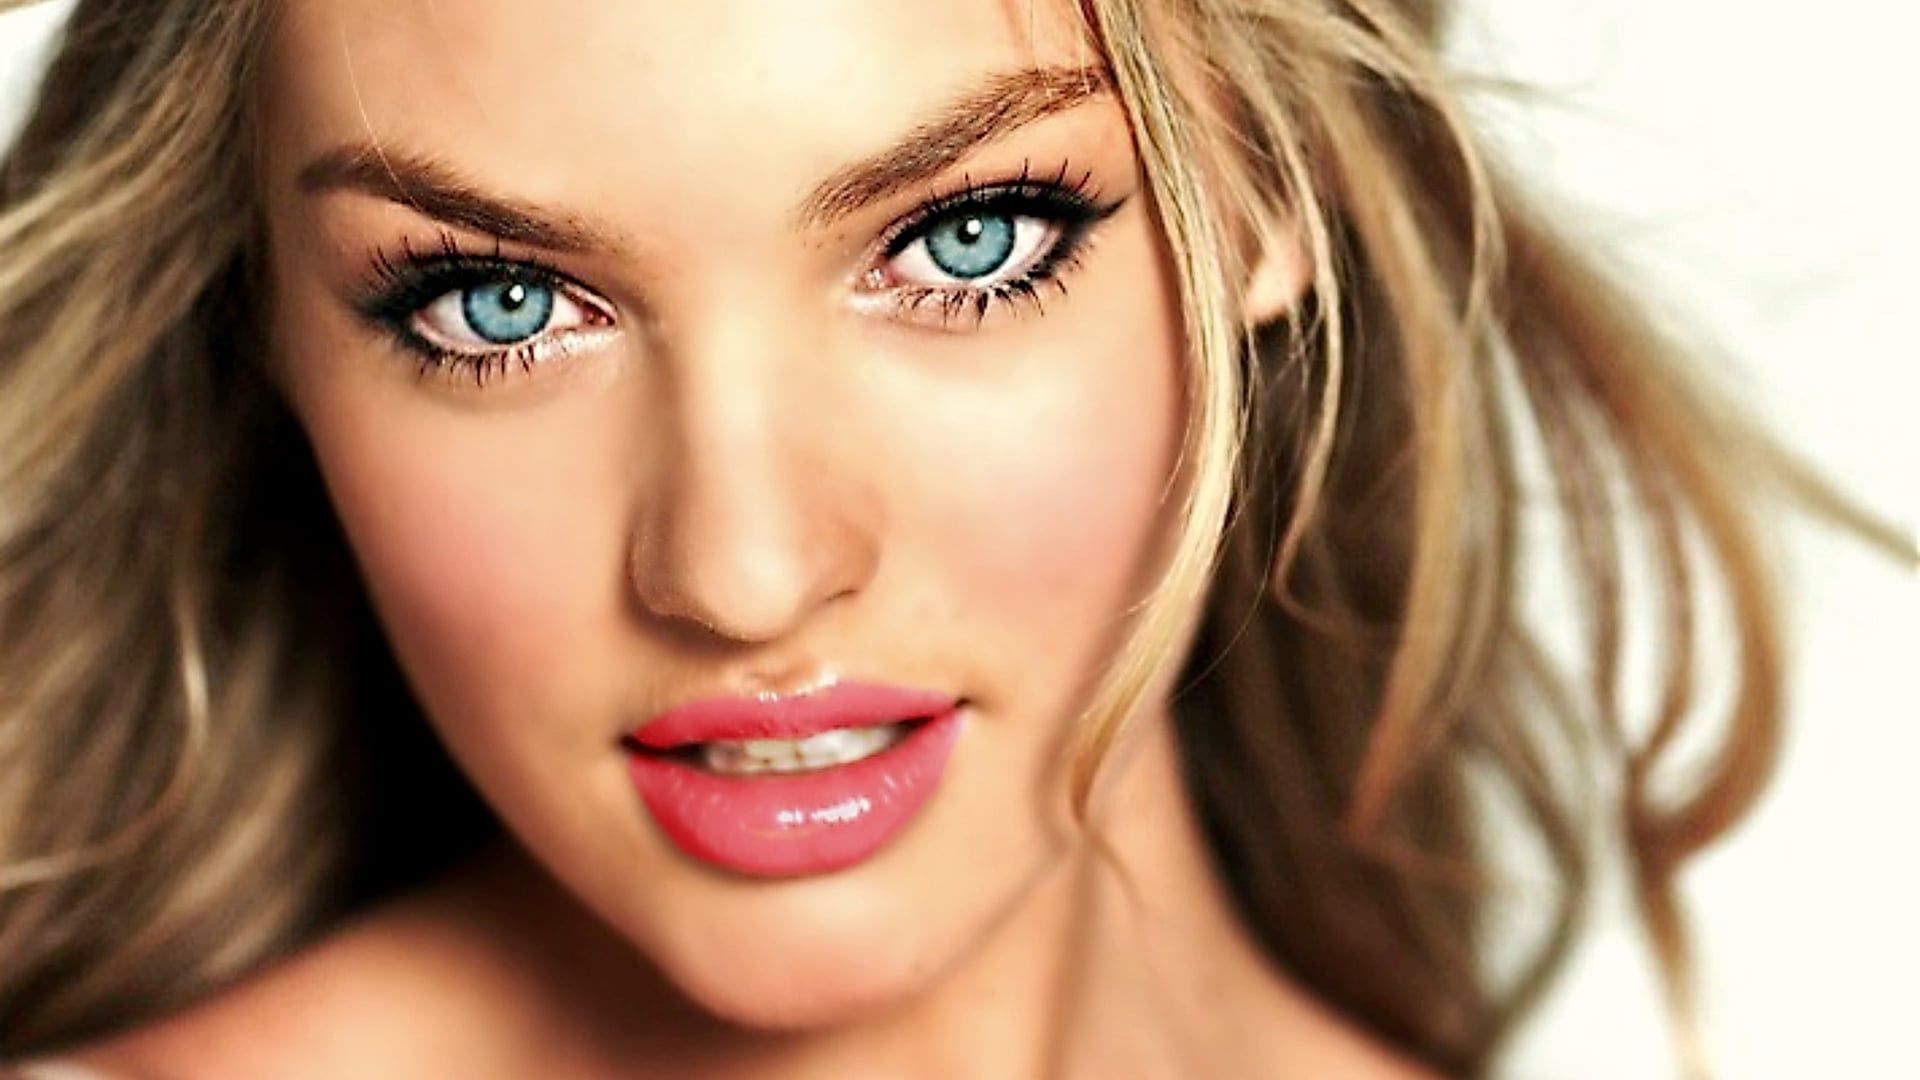 candice swanepoel celebrity faces - photo #37